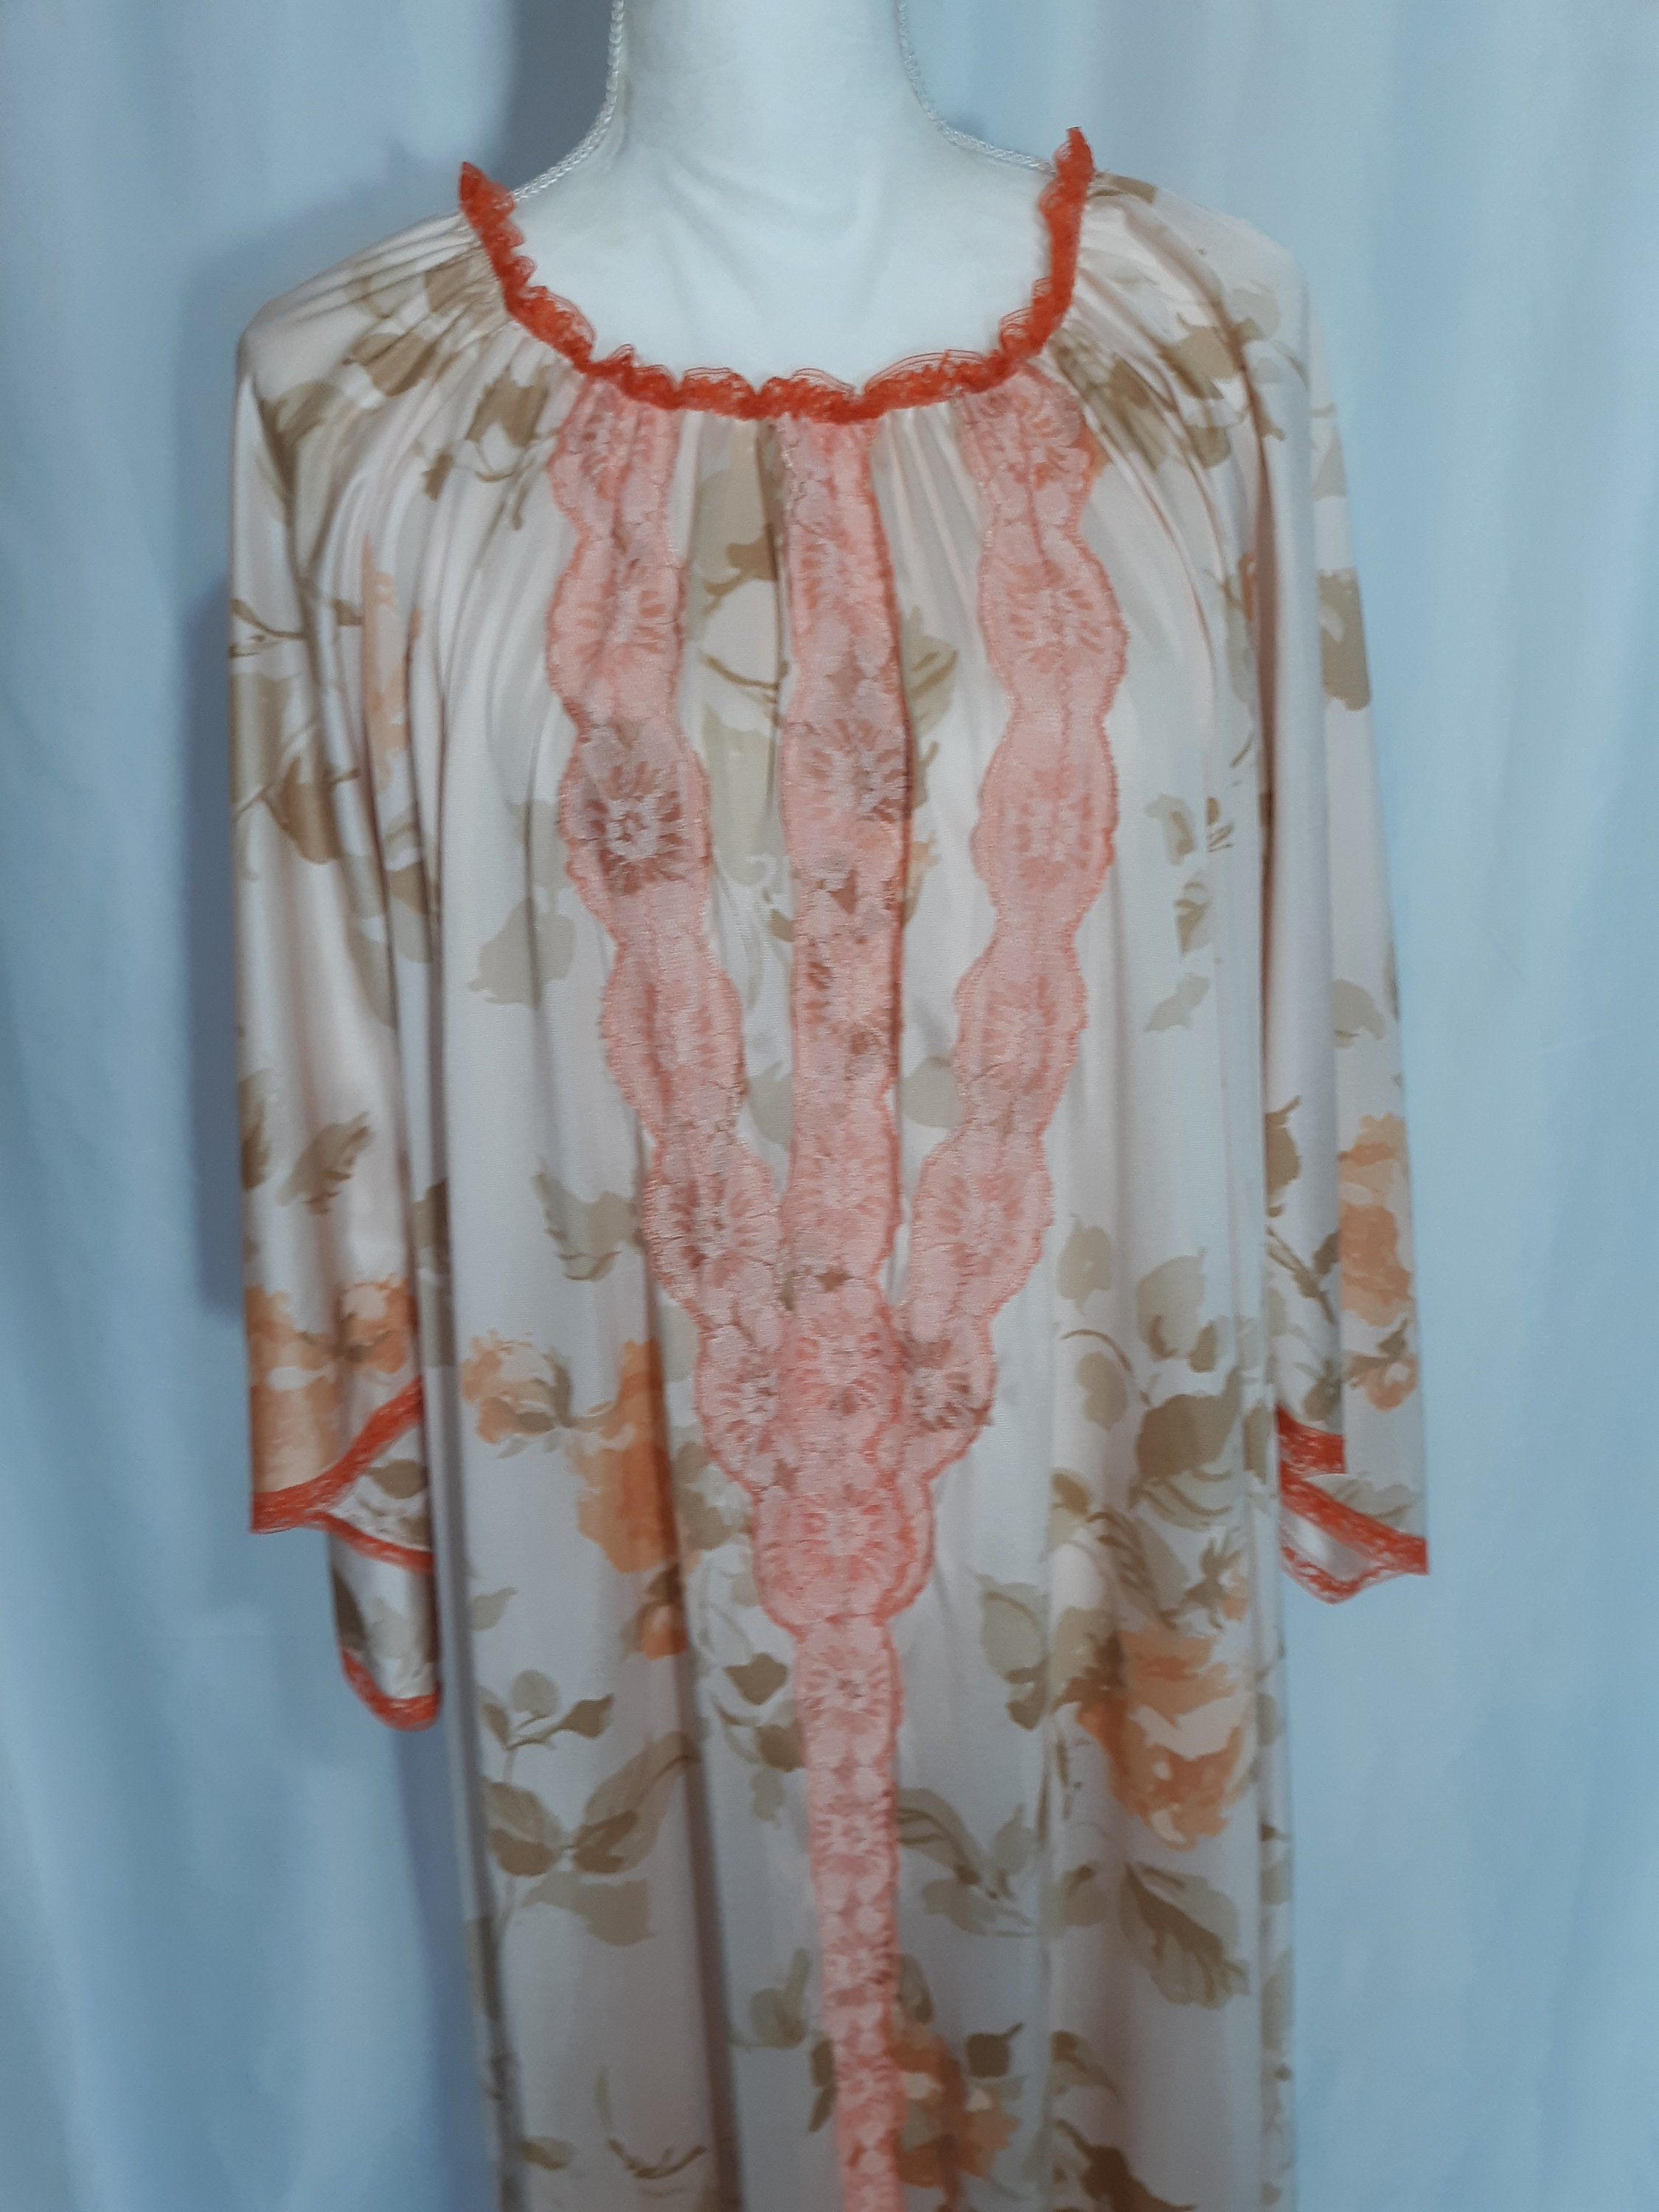 80s Dresses | Casual to Party Dresses Vintage Peach Caftan With Floral Pattern Orange Lace Ankle Length Bell Sleeves 1970s 1980s Sleepwear Robe Dress  601 $0.00 AT vintagedancer.com